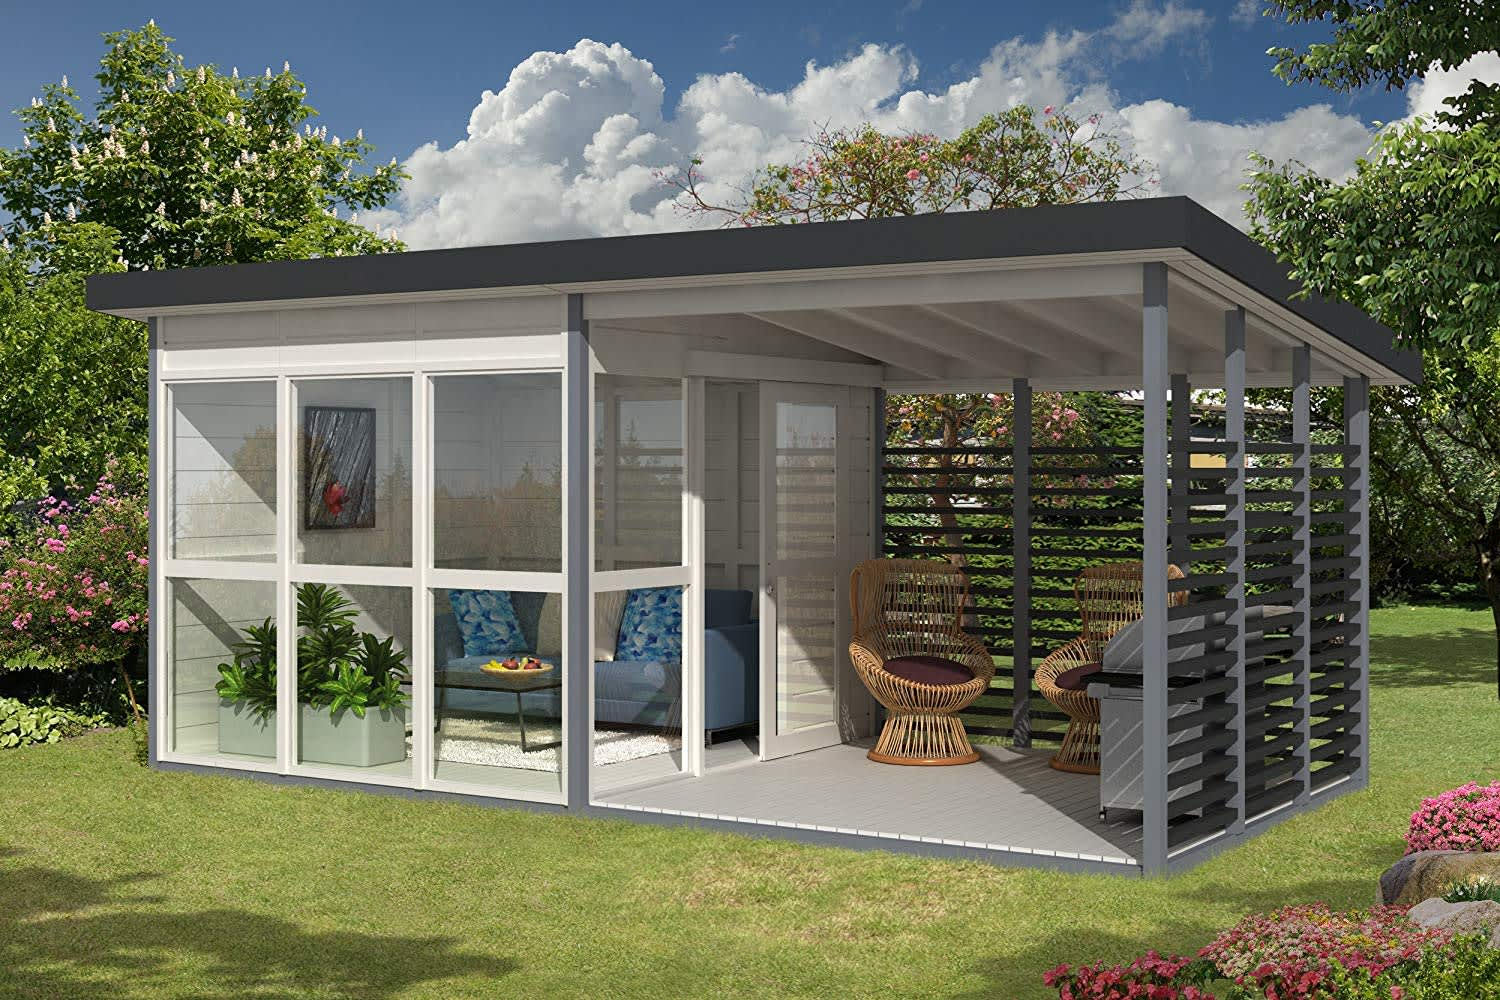 8 Prefab Tiny Houses You Can Order Right Off Amazon, Starting at $5K